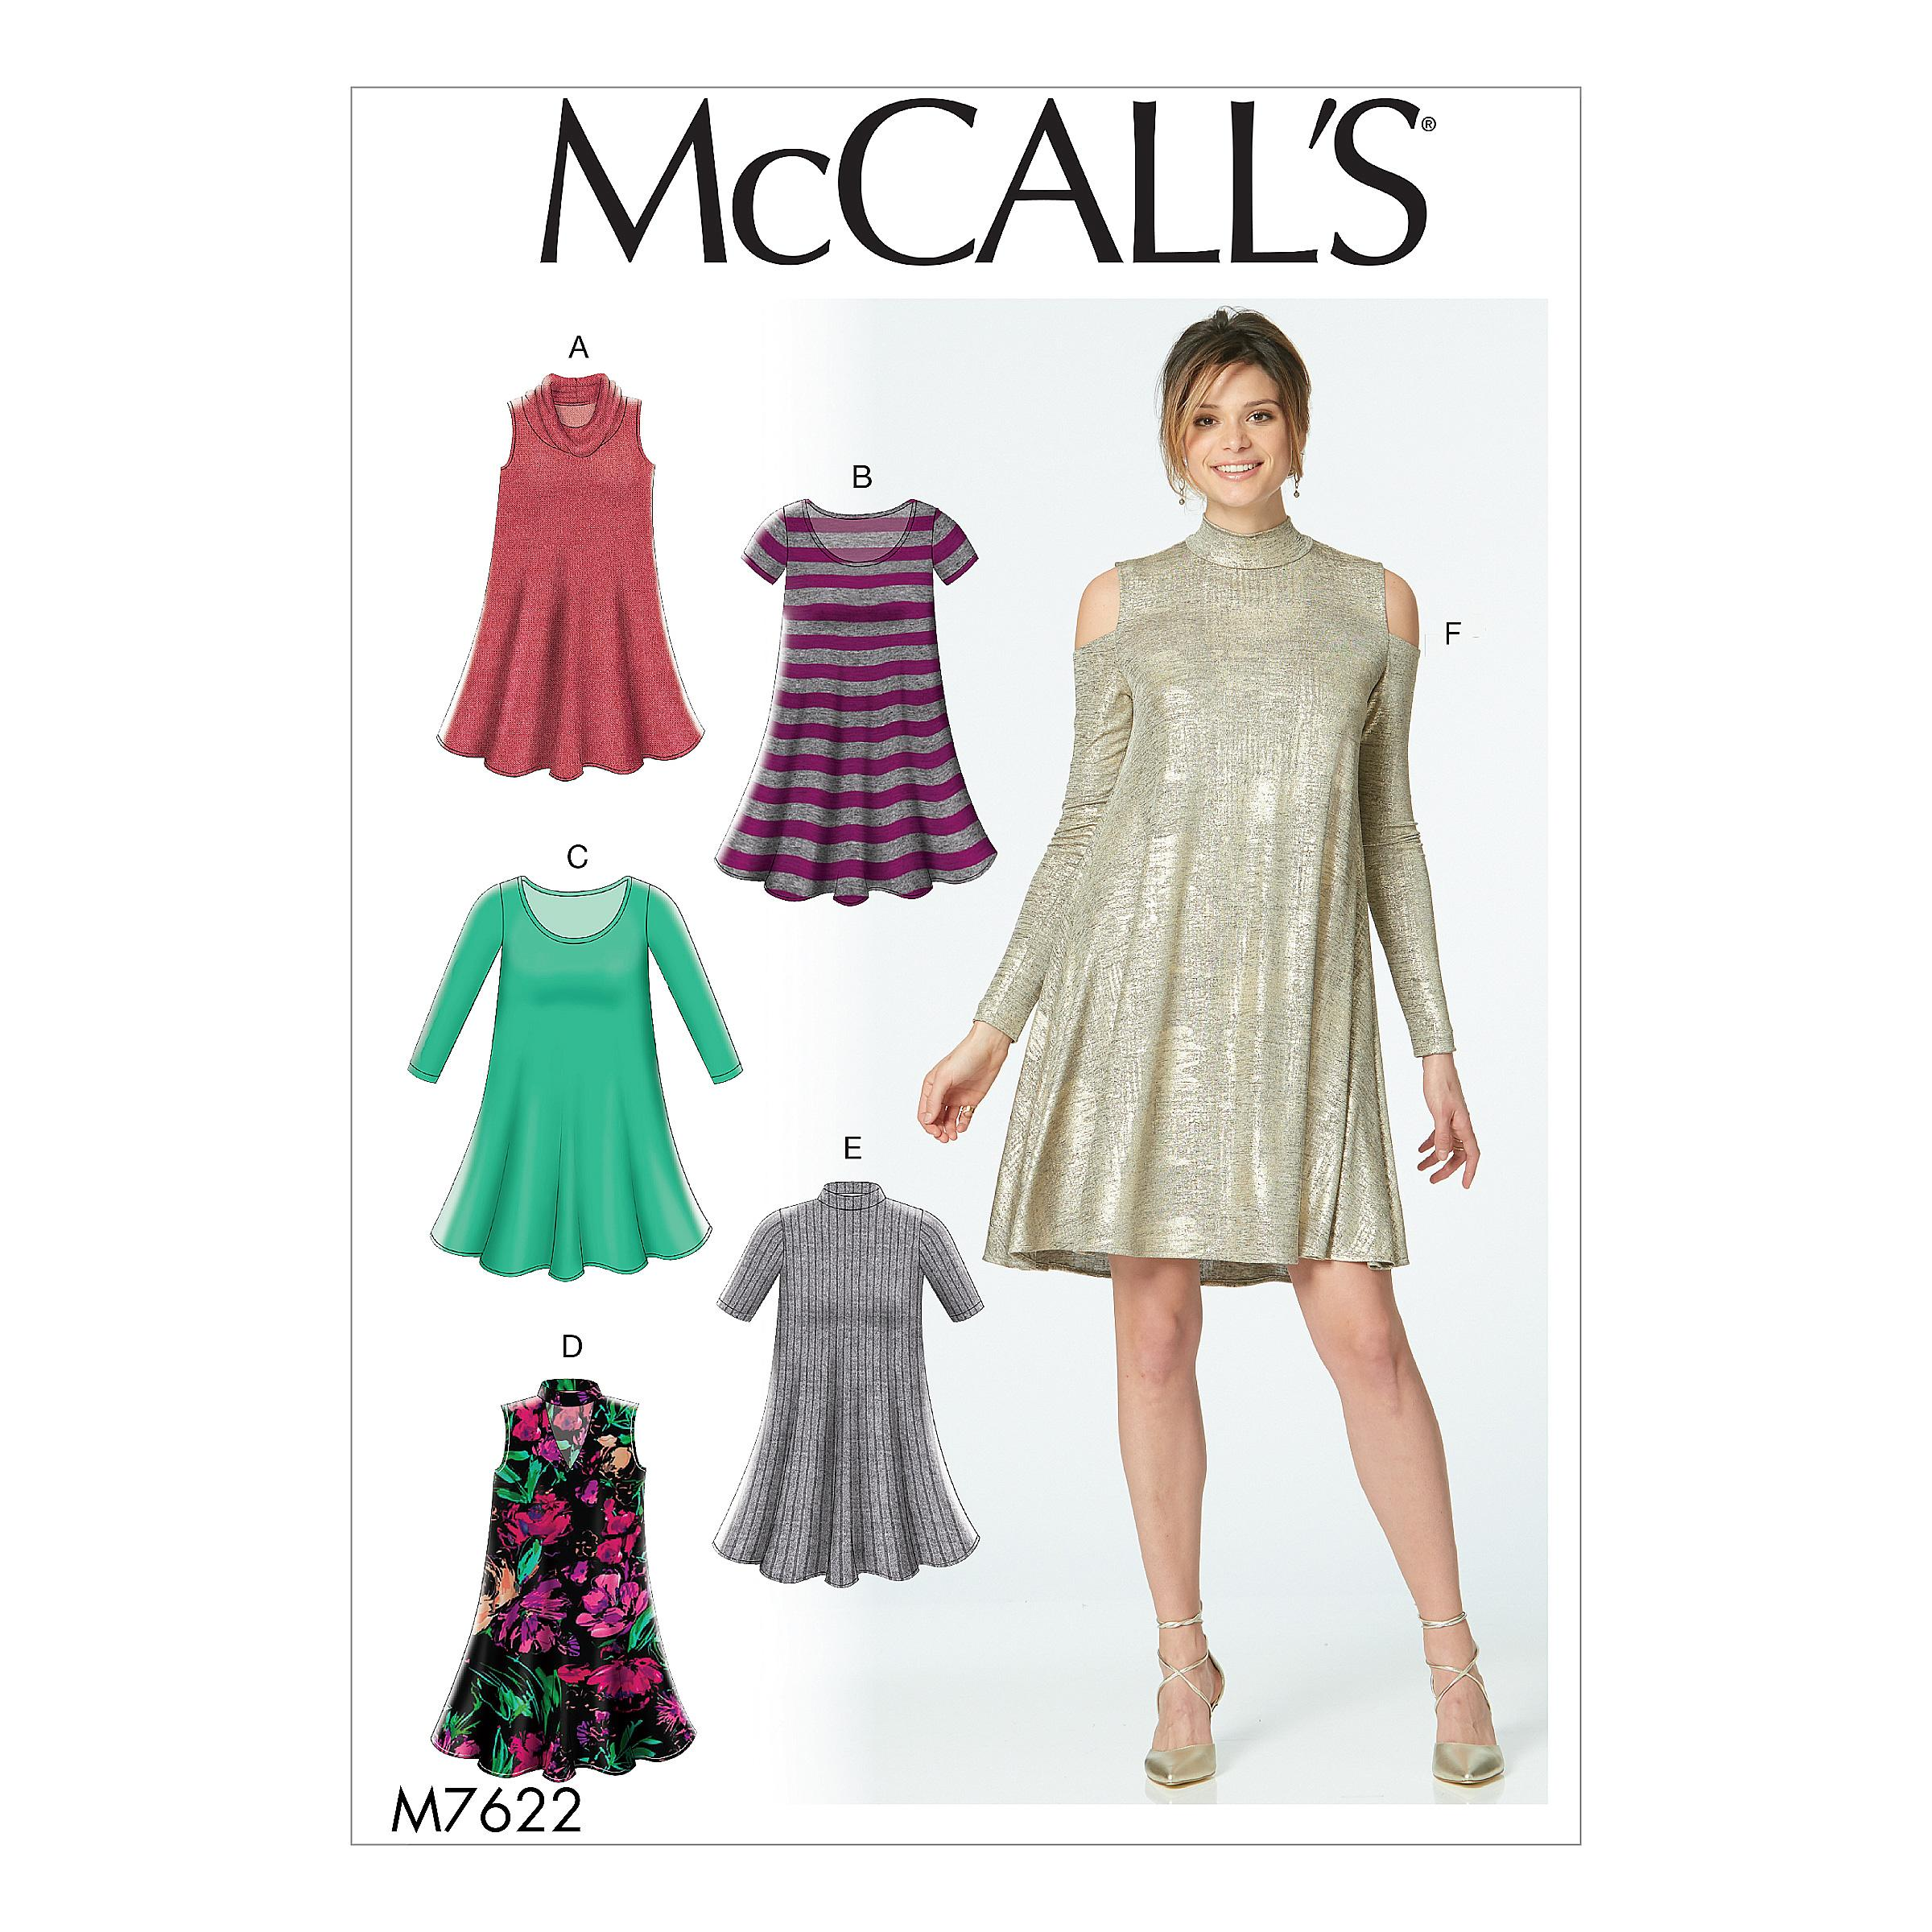 McCalls M7622 Misses Dresses, Misses Prom, Evening & Bridal